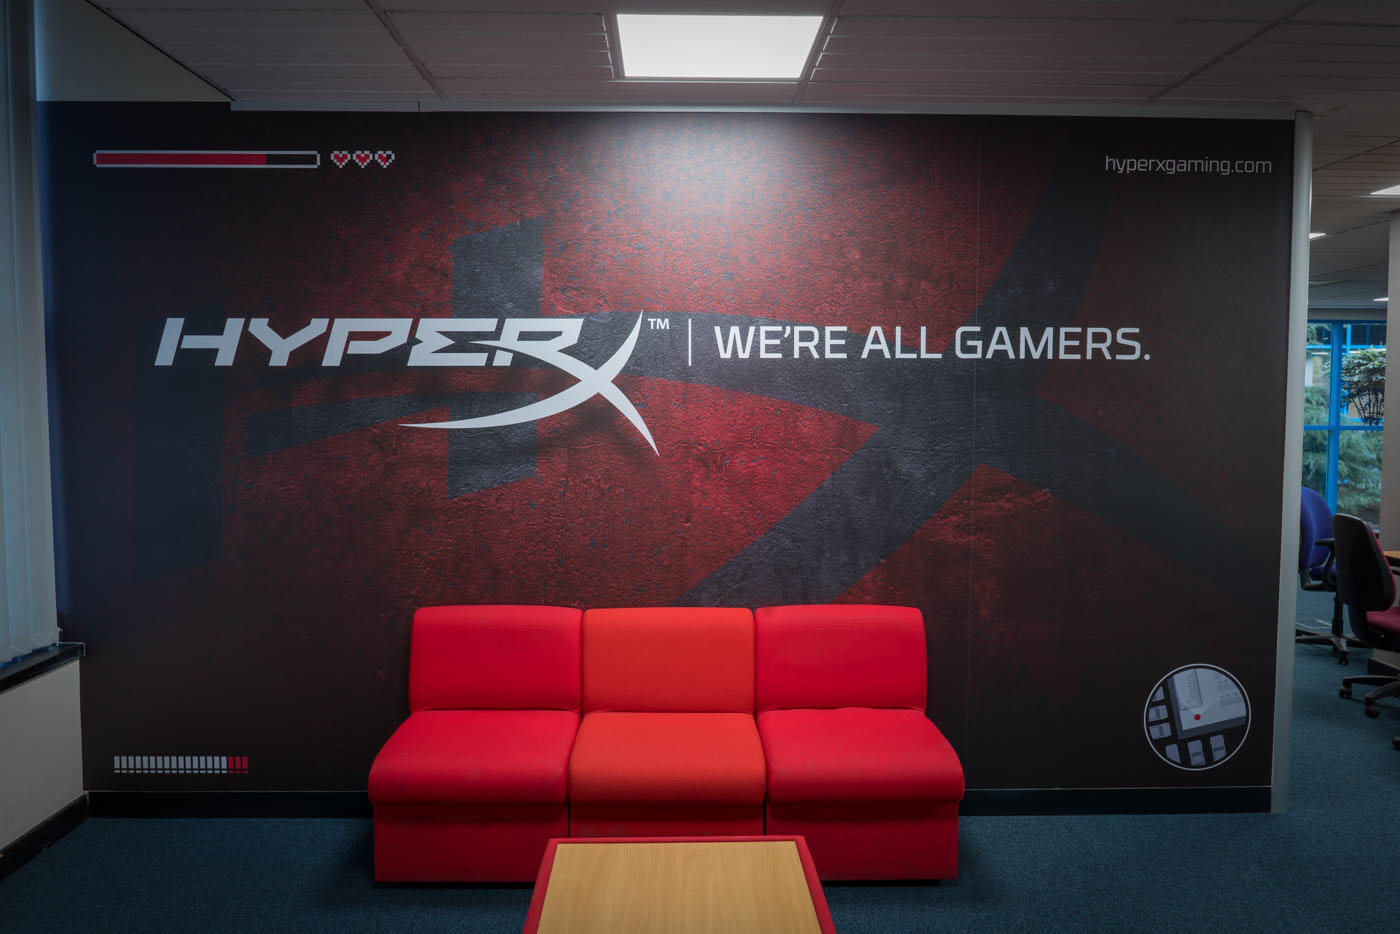 HyperX_Gaming_Room-1473